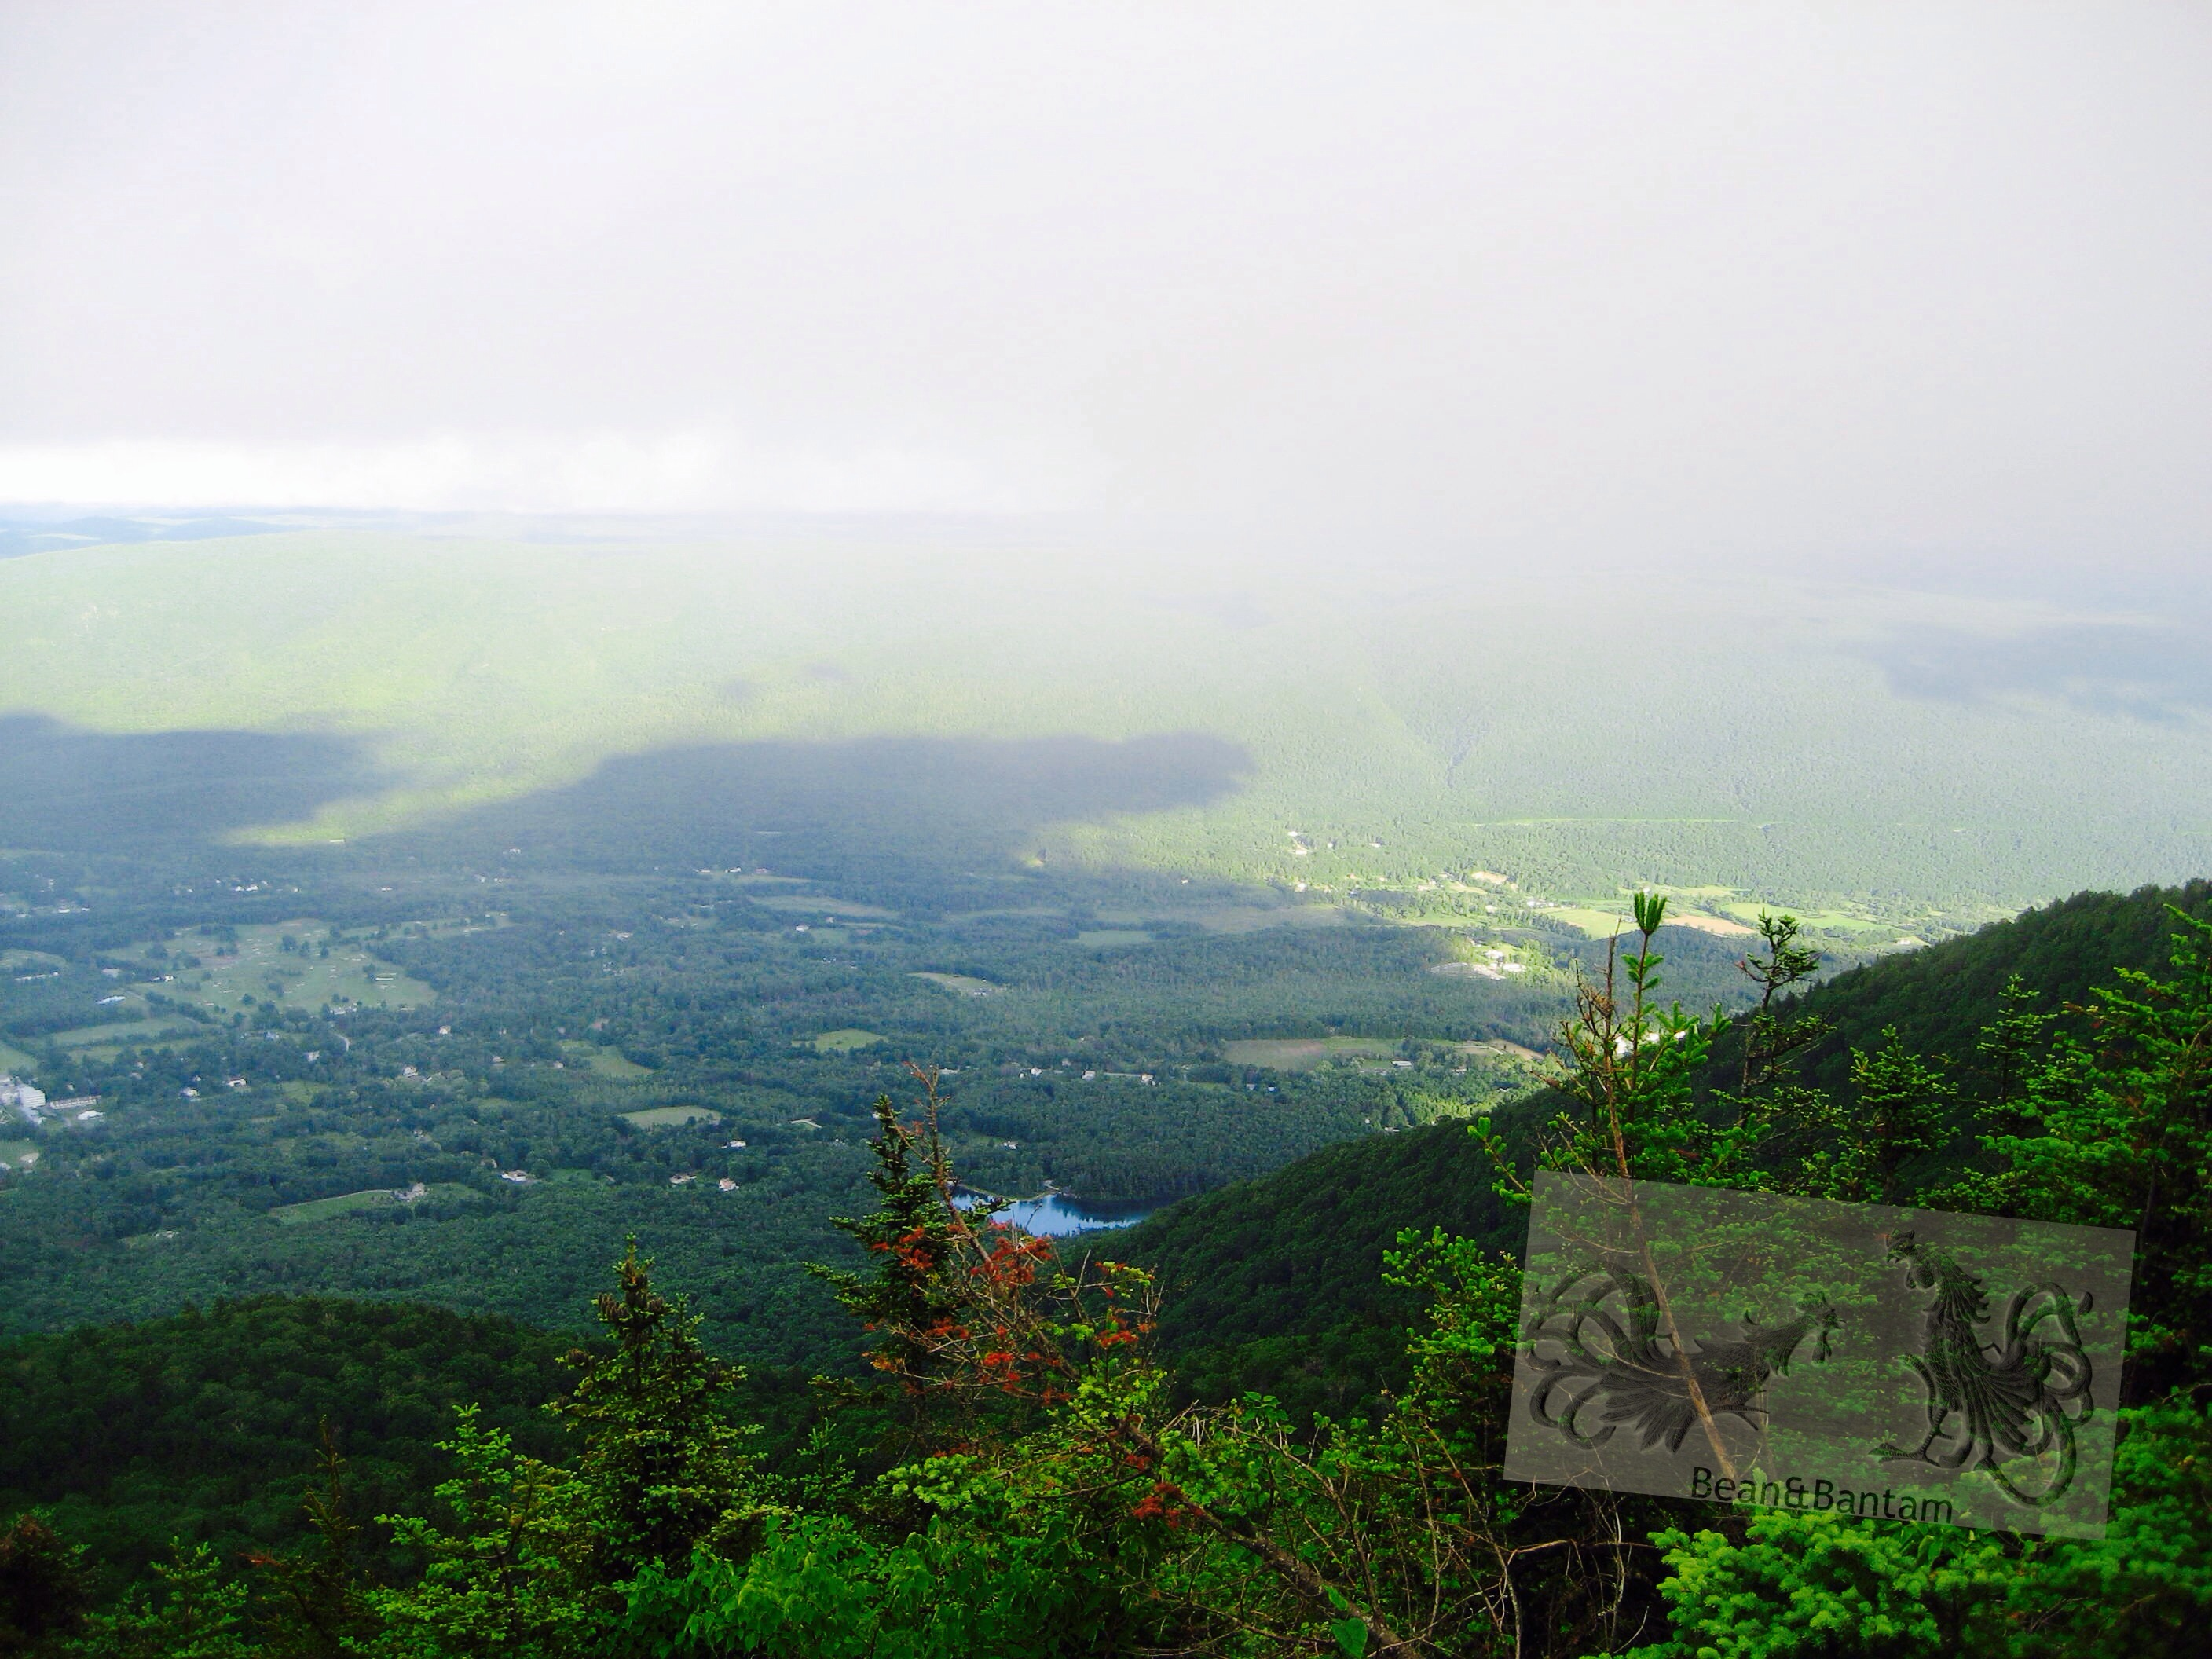 View from Lookout Rock, Mount Equinox, Manchester, Vermont